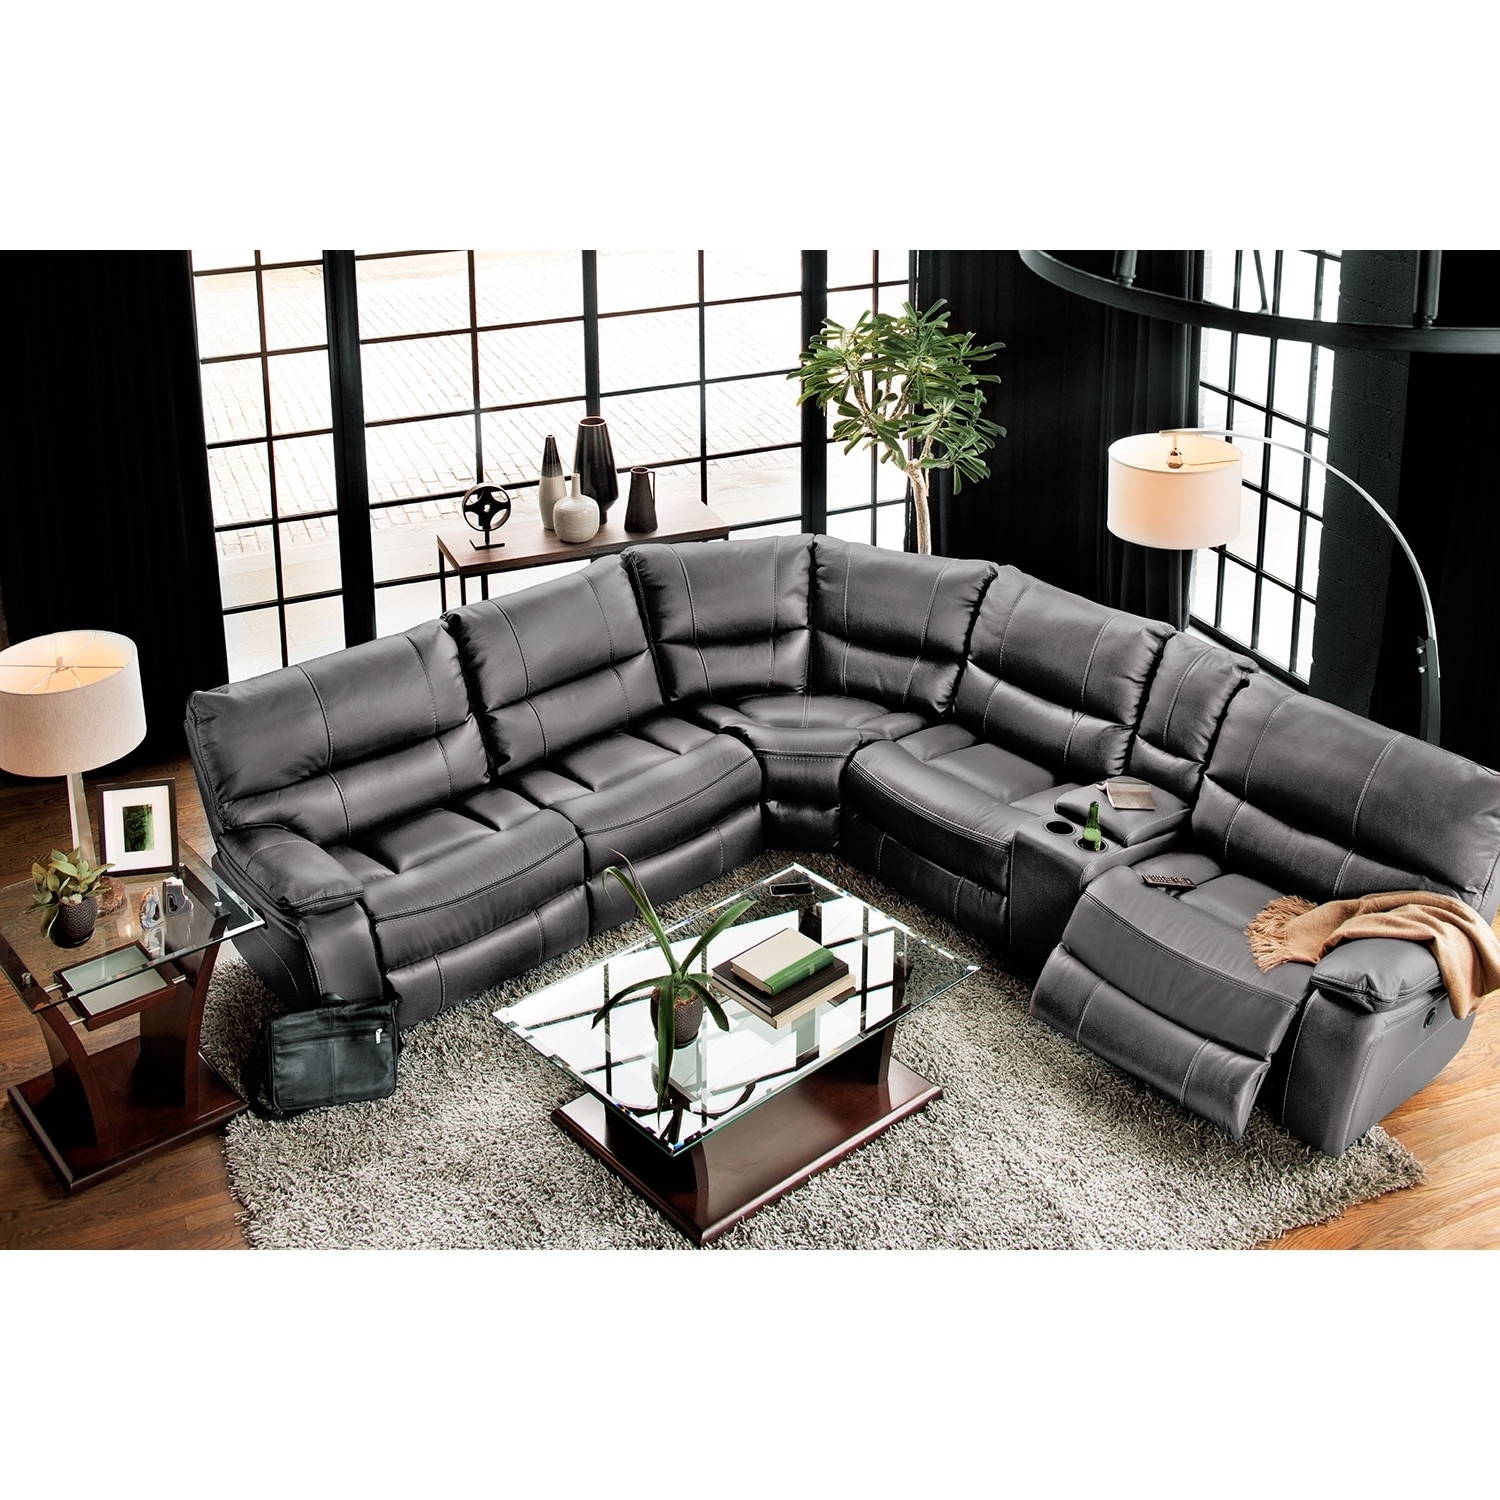 Newest Orlando Sectional Sofas Pertaining To Orlando 6 Piece Power Reclining Sectional With 1 Stationary Chair (View 8 of 20)